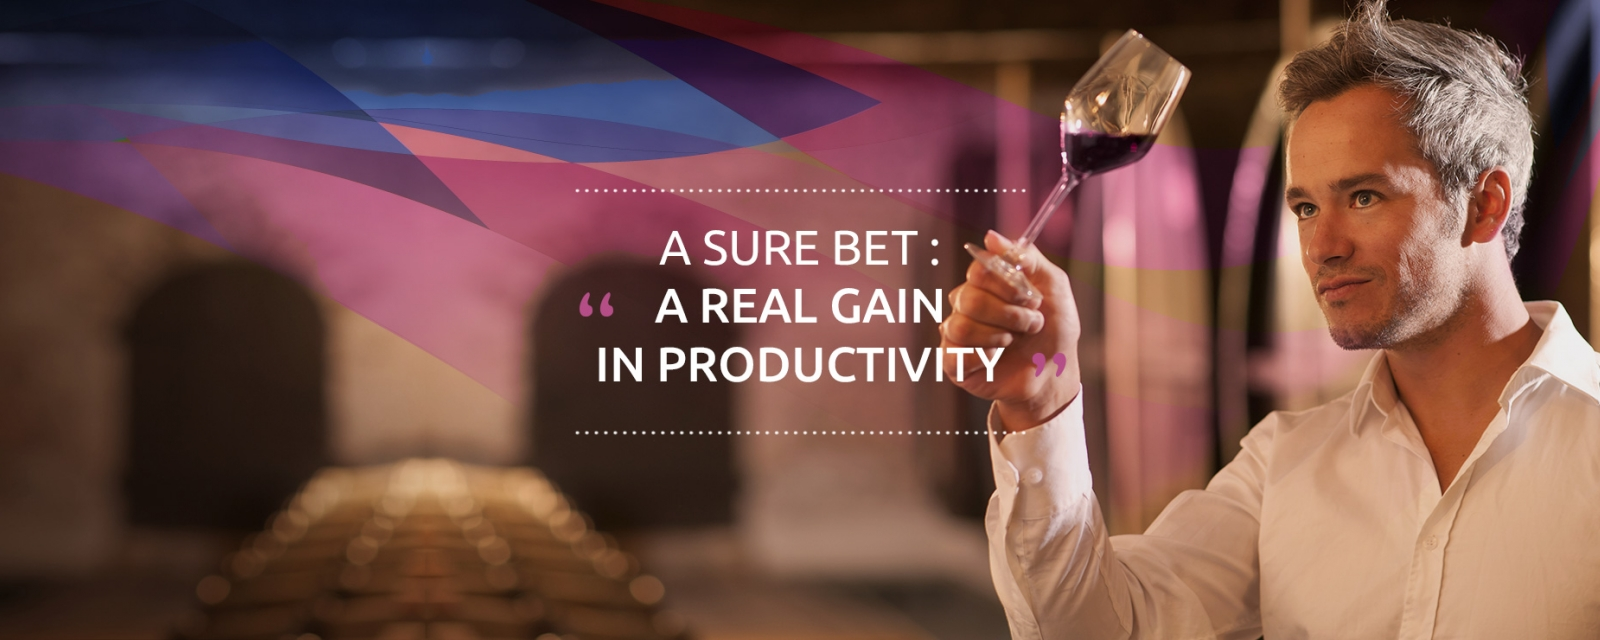 A SURE BET : « A REAL GAIN IN PRODUCTIVITY »